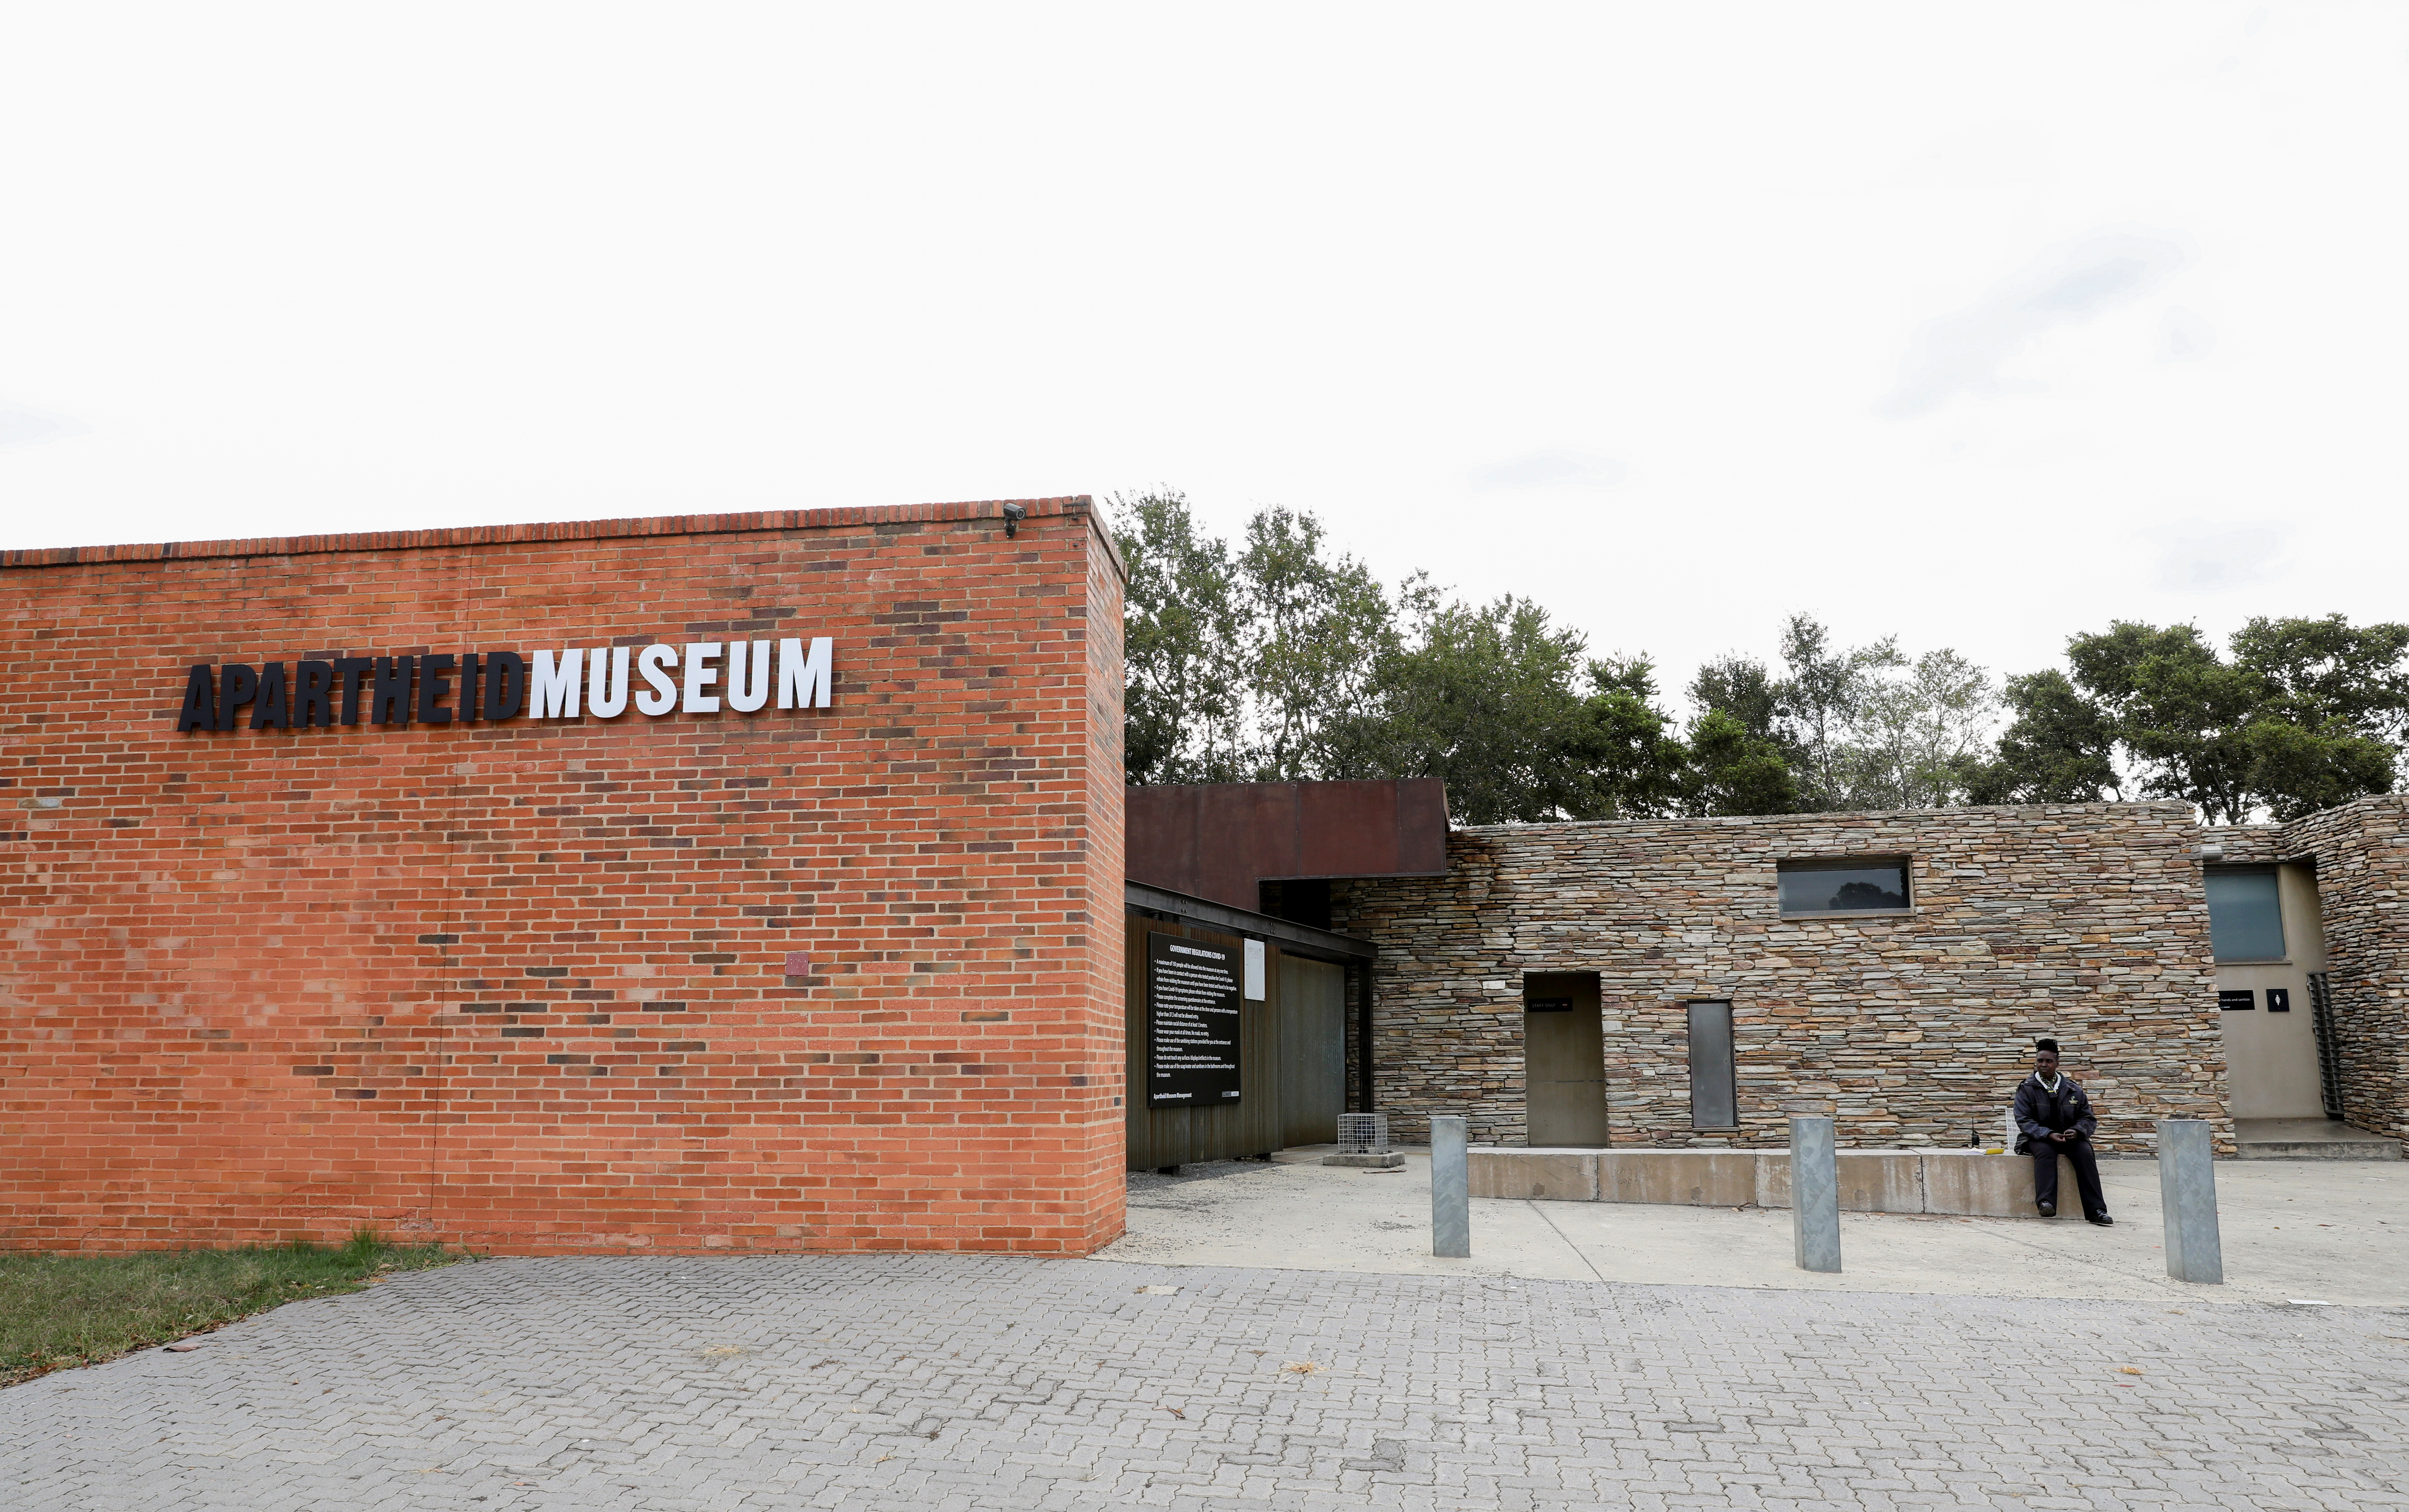 A security officer sits at the entrance of the Apartheid Museum, one of dozens of heritage attractions and art galleries around the country forced to close their doors due to the coronavirus disease (COVID-19) pandemic, in Johannesburg, South Africa April 7, 2021. REUTERS/Siphiwe Sibeko